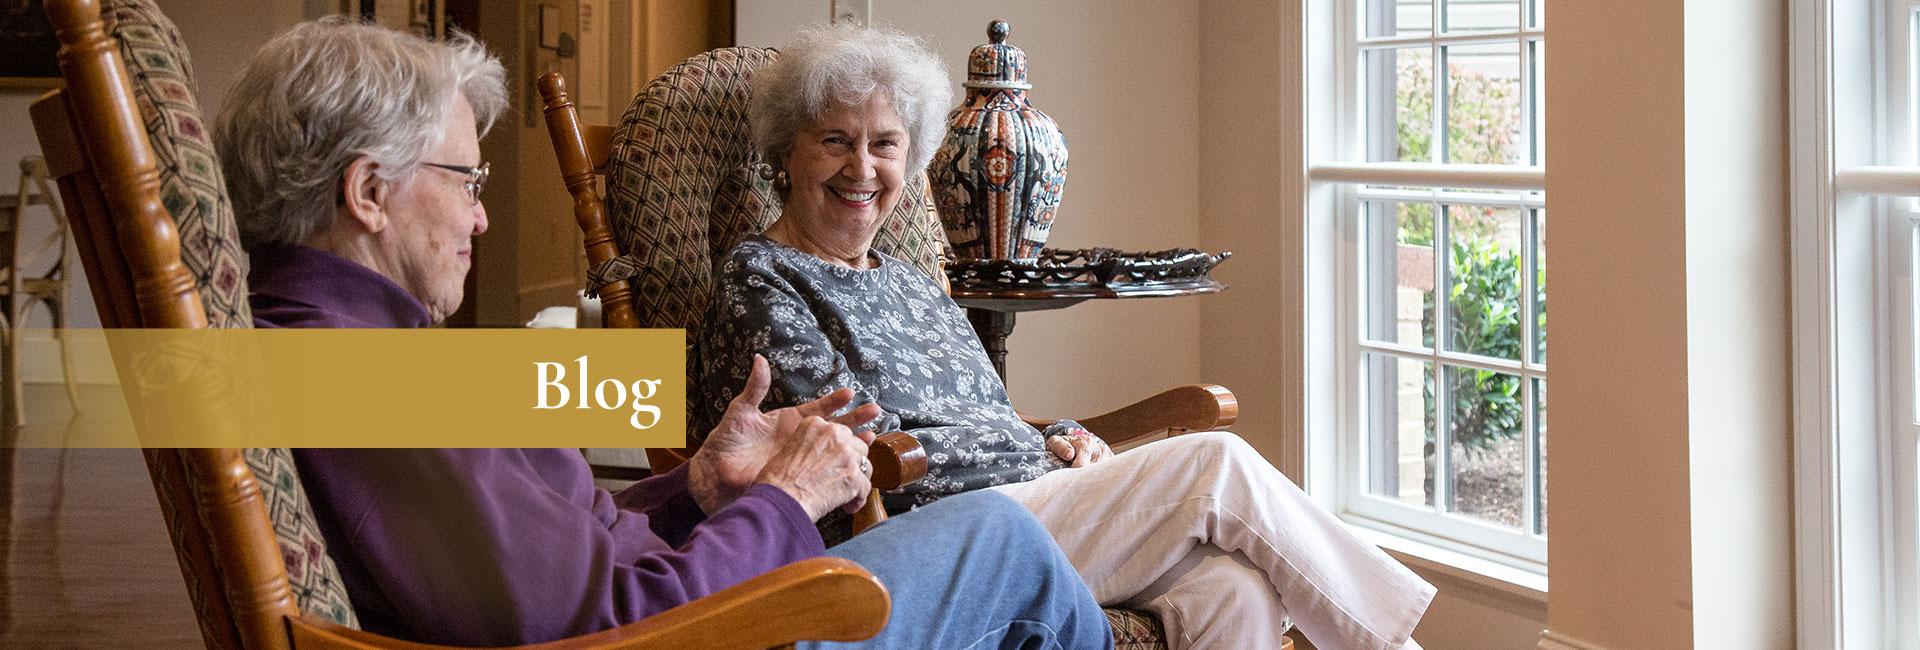 Our blog provides informative articles about topics that matter to seniors who are interested in leading active and independent lives.